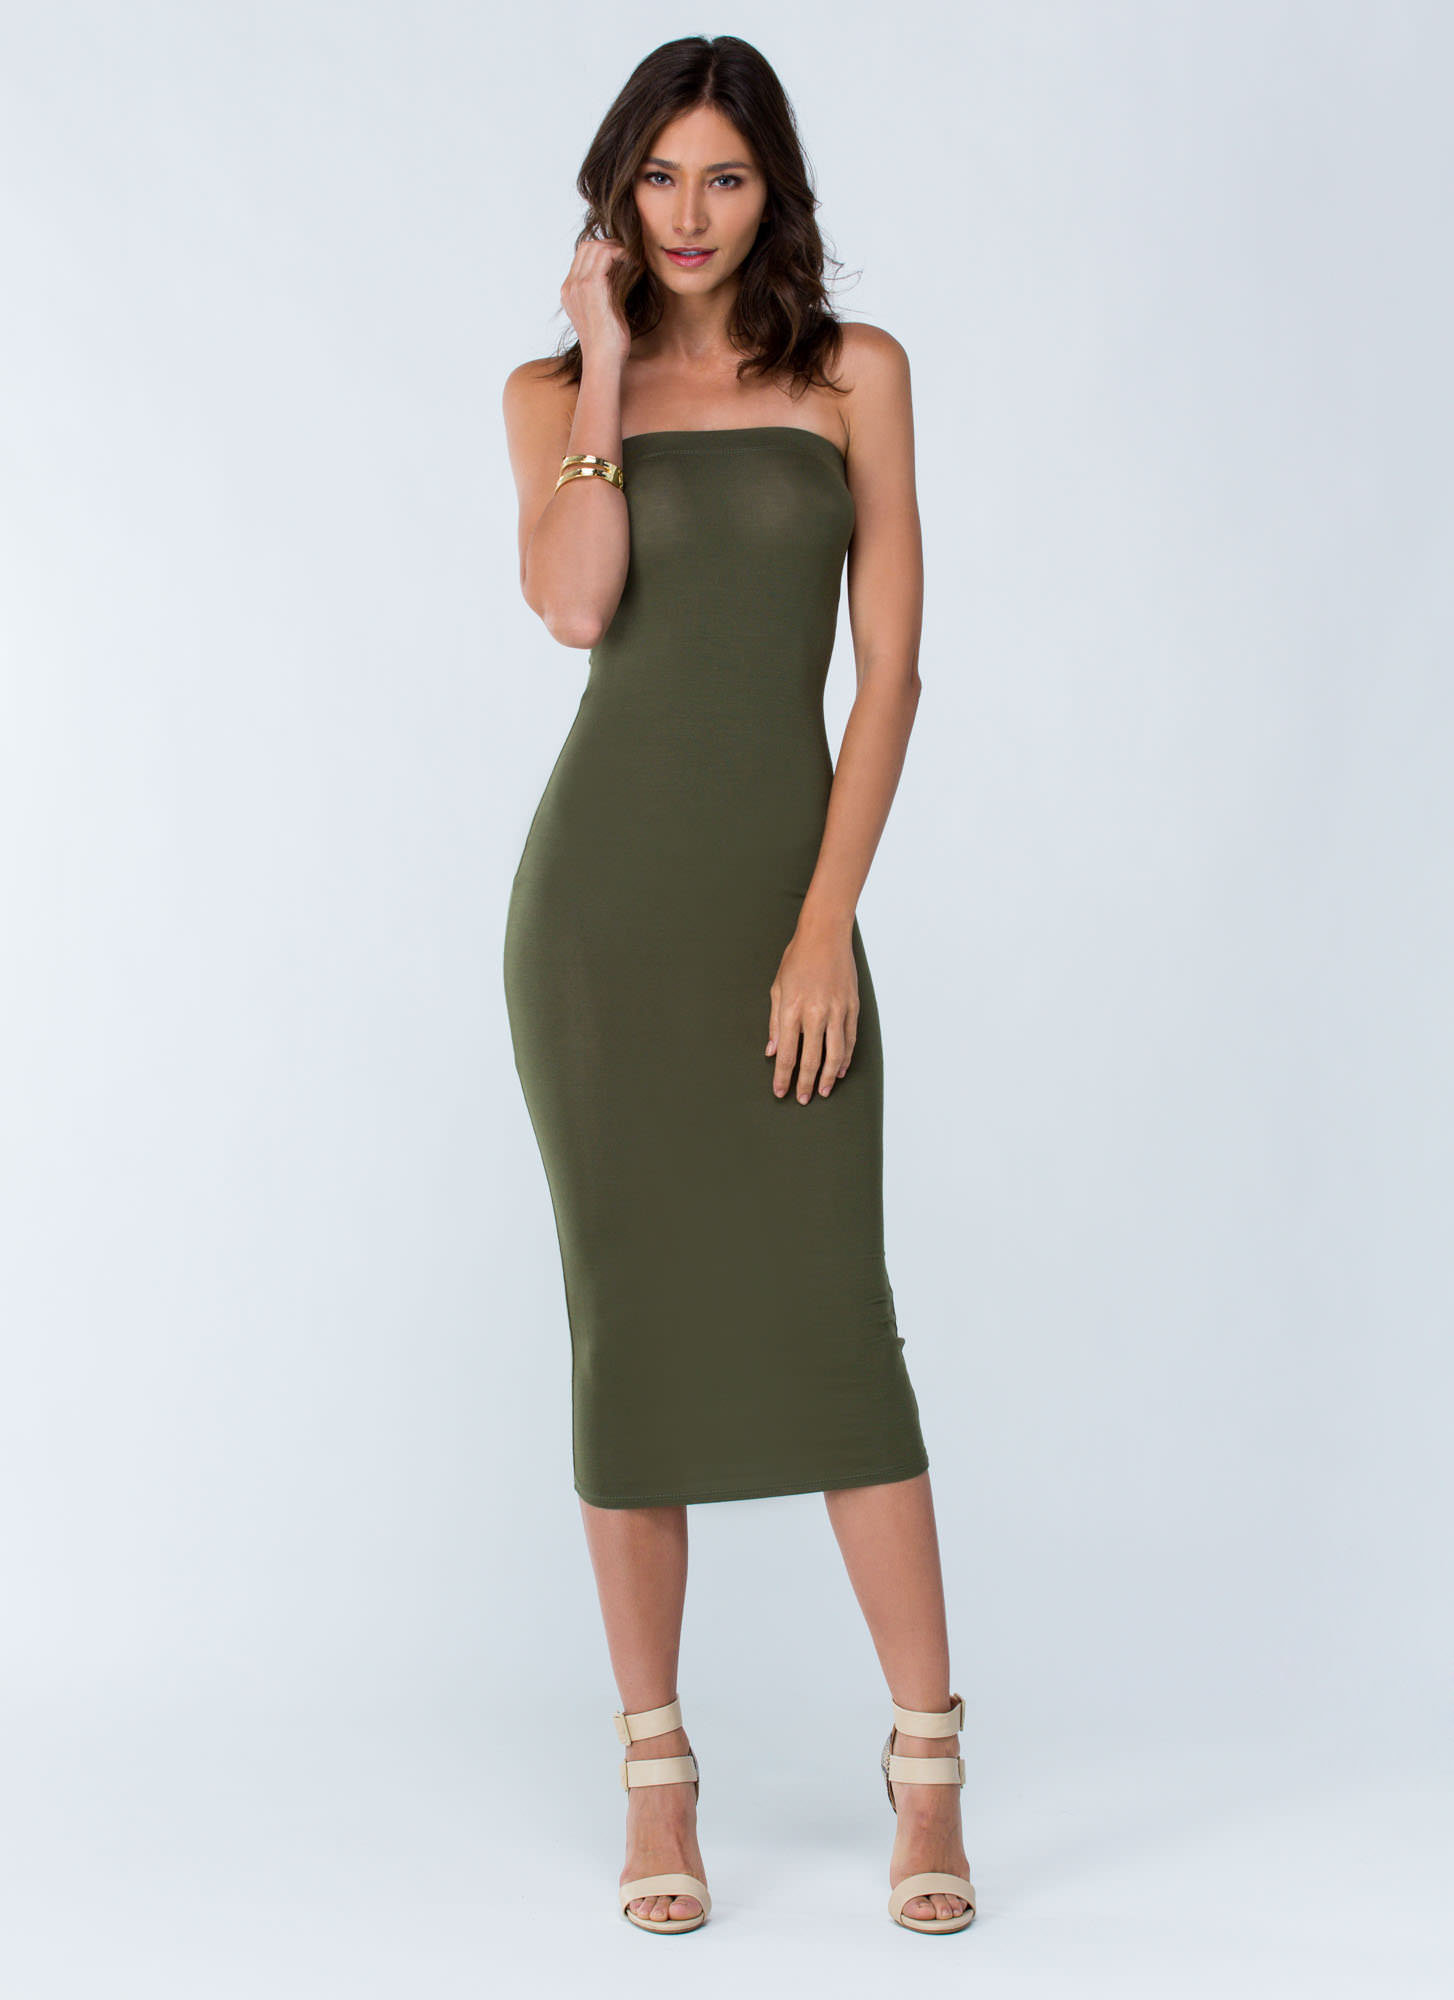 Keep It Simple Tube Midi Dress YELLOW NUDE OLIVE BLACK ROYAL RUST WHITE FUCHSIA - GoJane.com